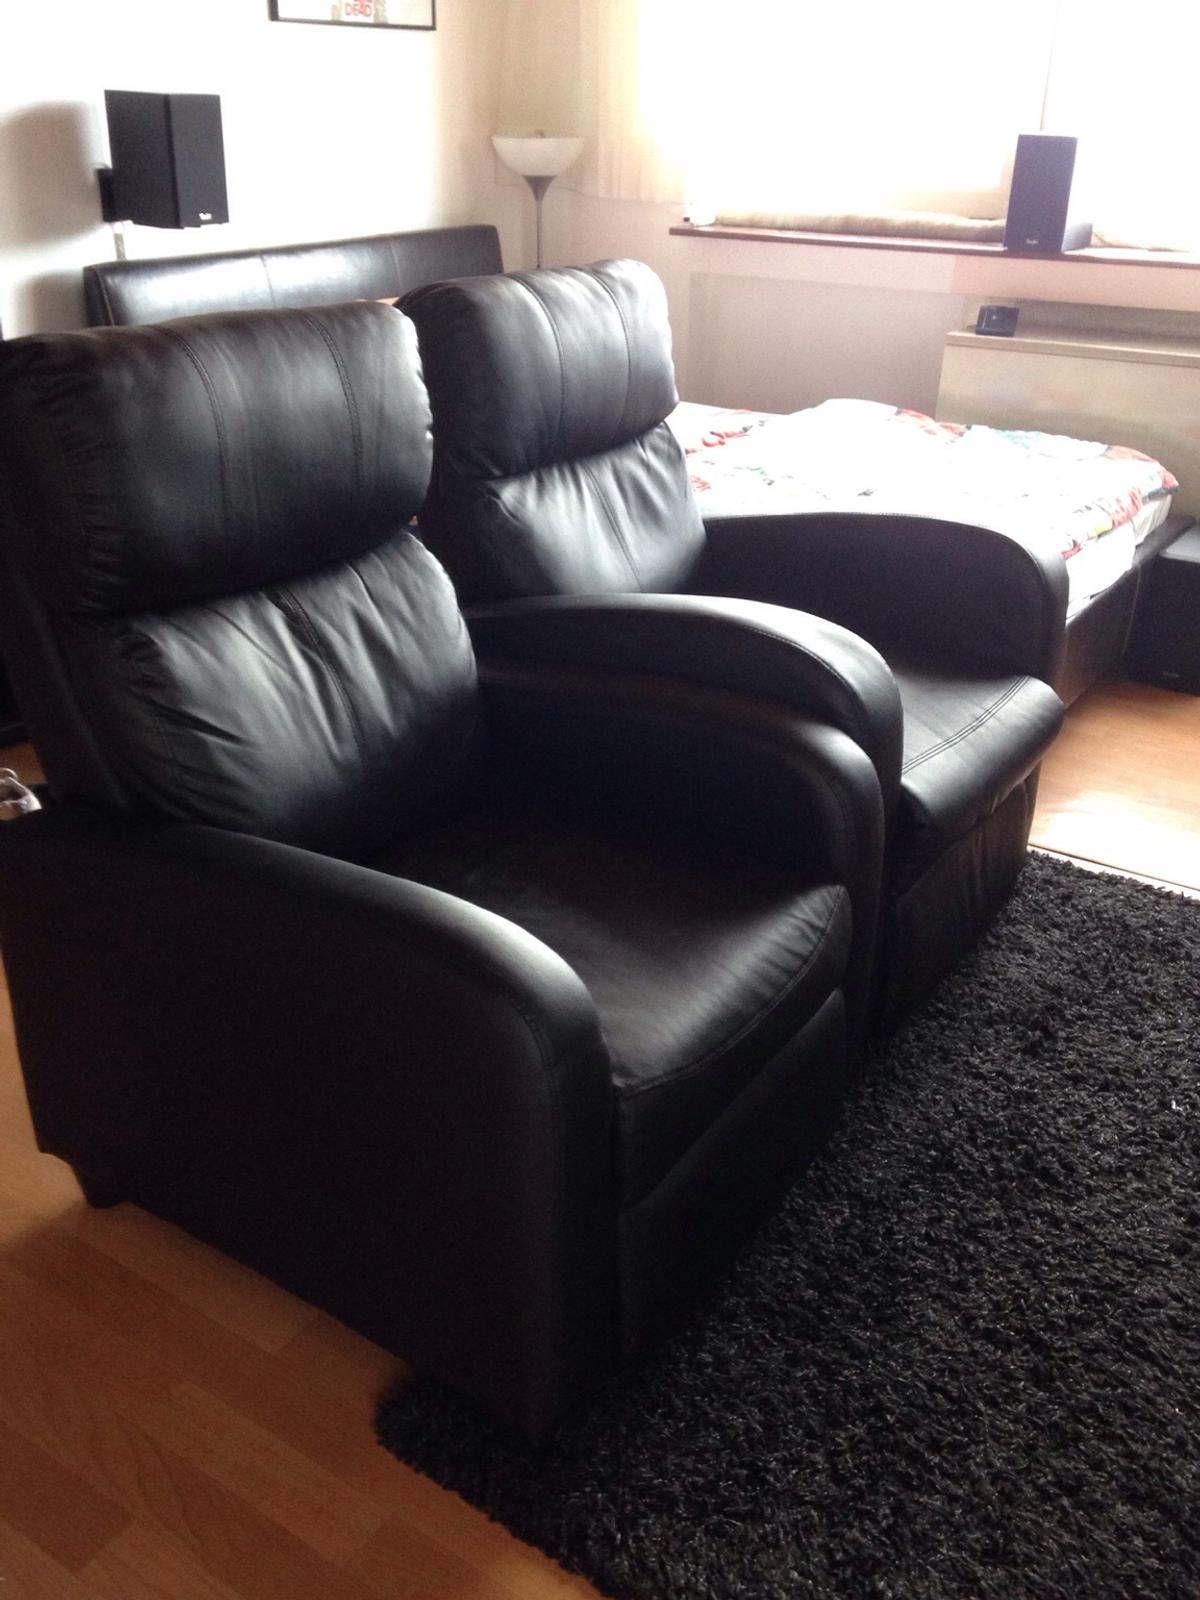 Kinosessel Couch 2x Relaxsessel Kinosessel Couch Sofa In 64686 Lautertal